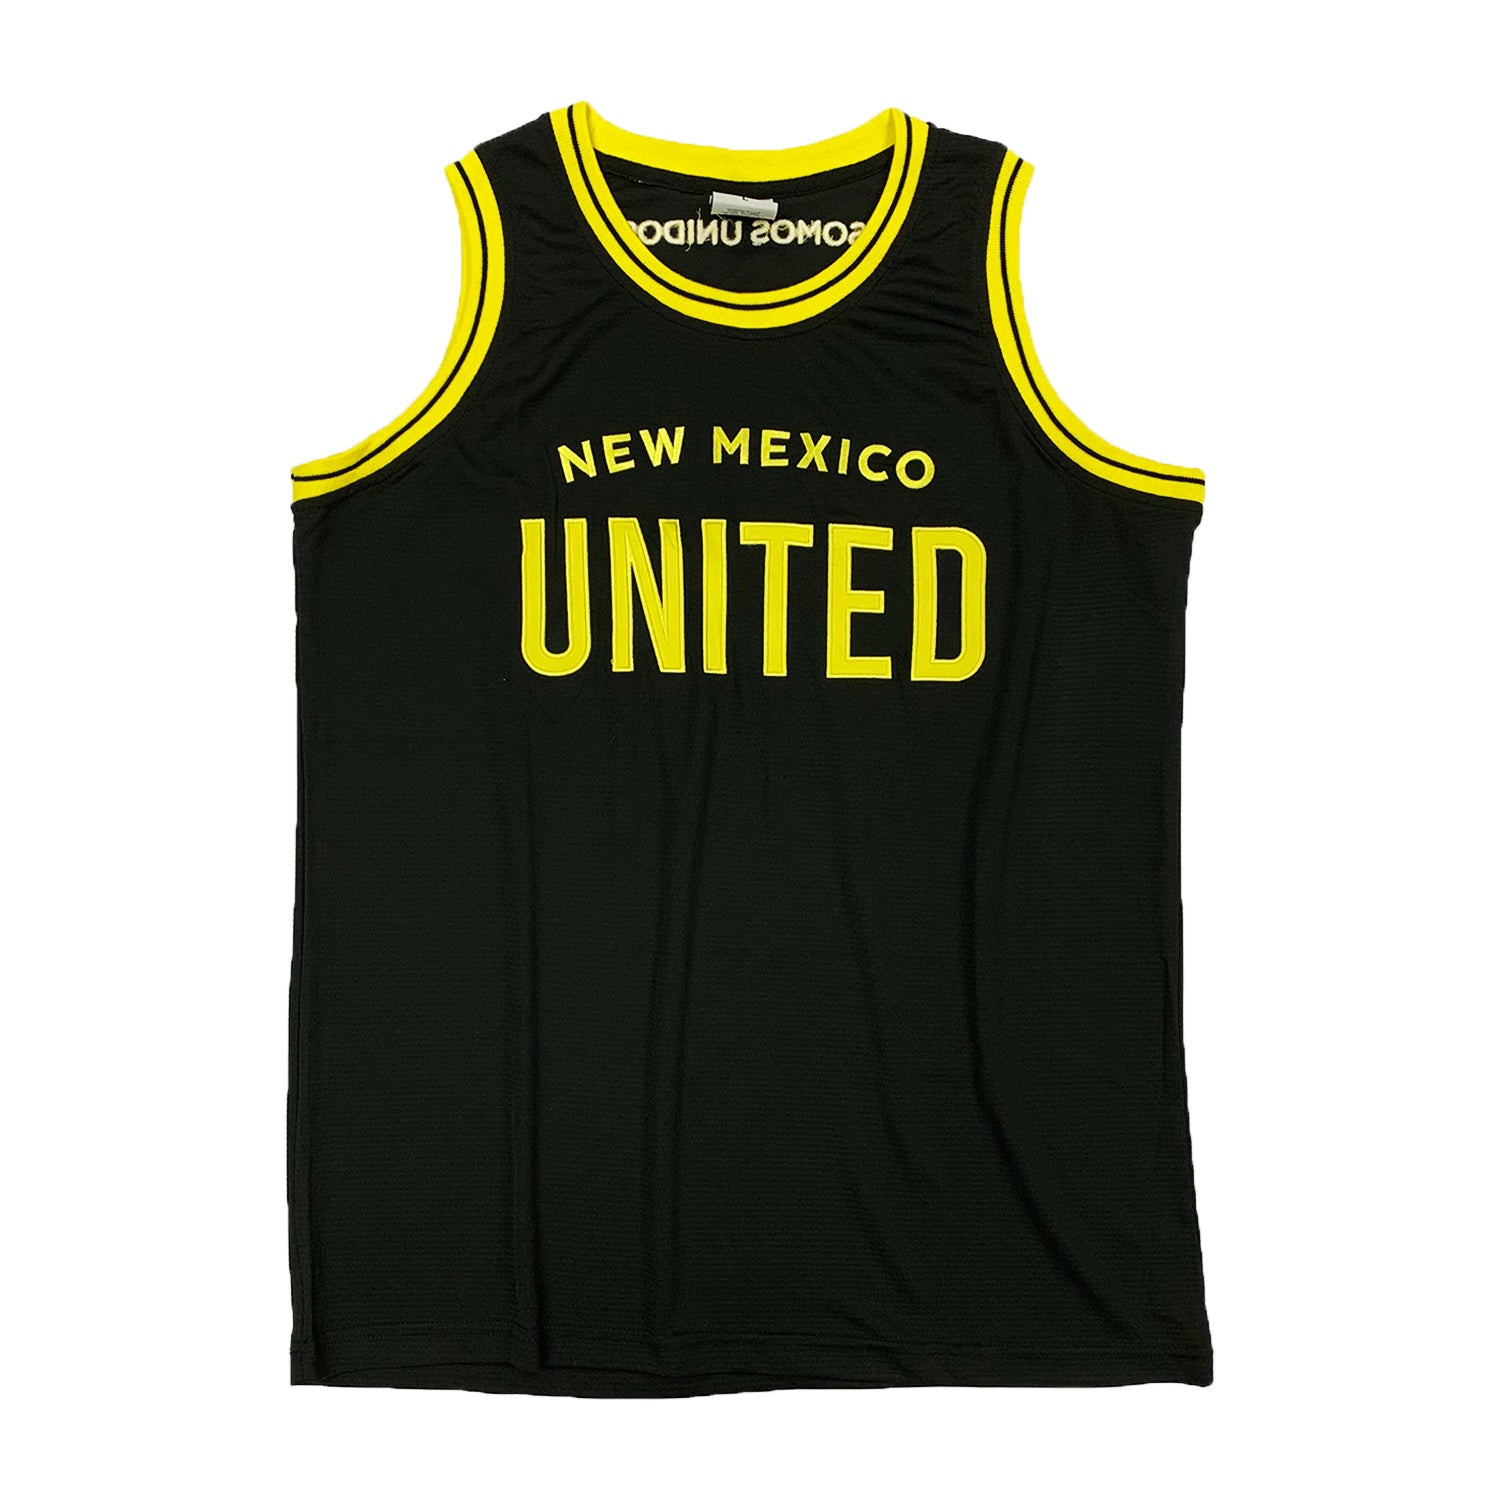 New Mexico United Basketball Jersey